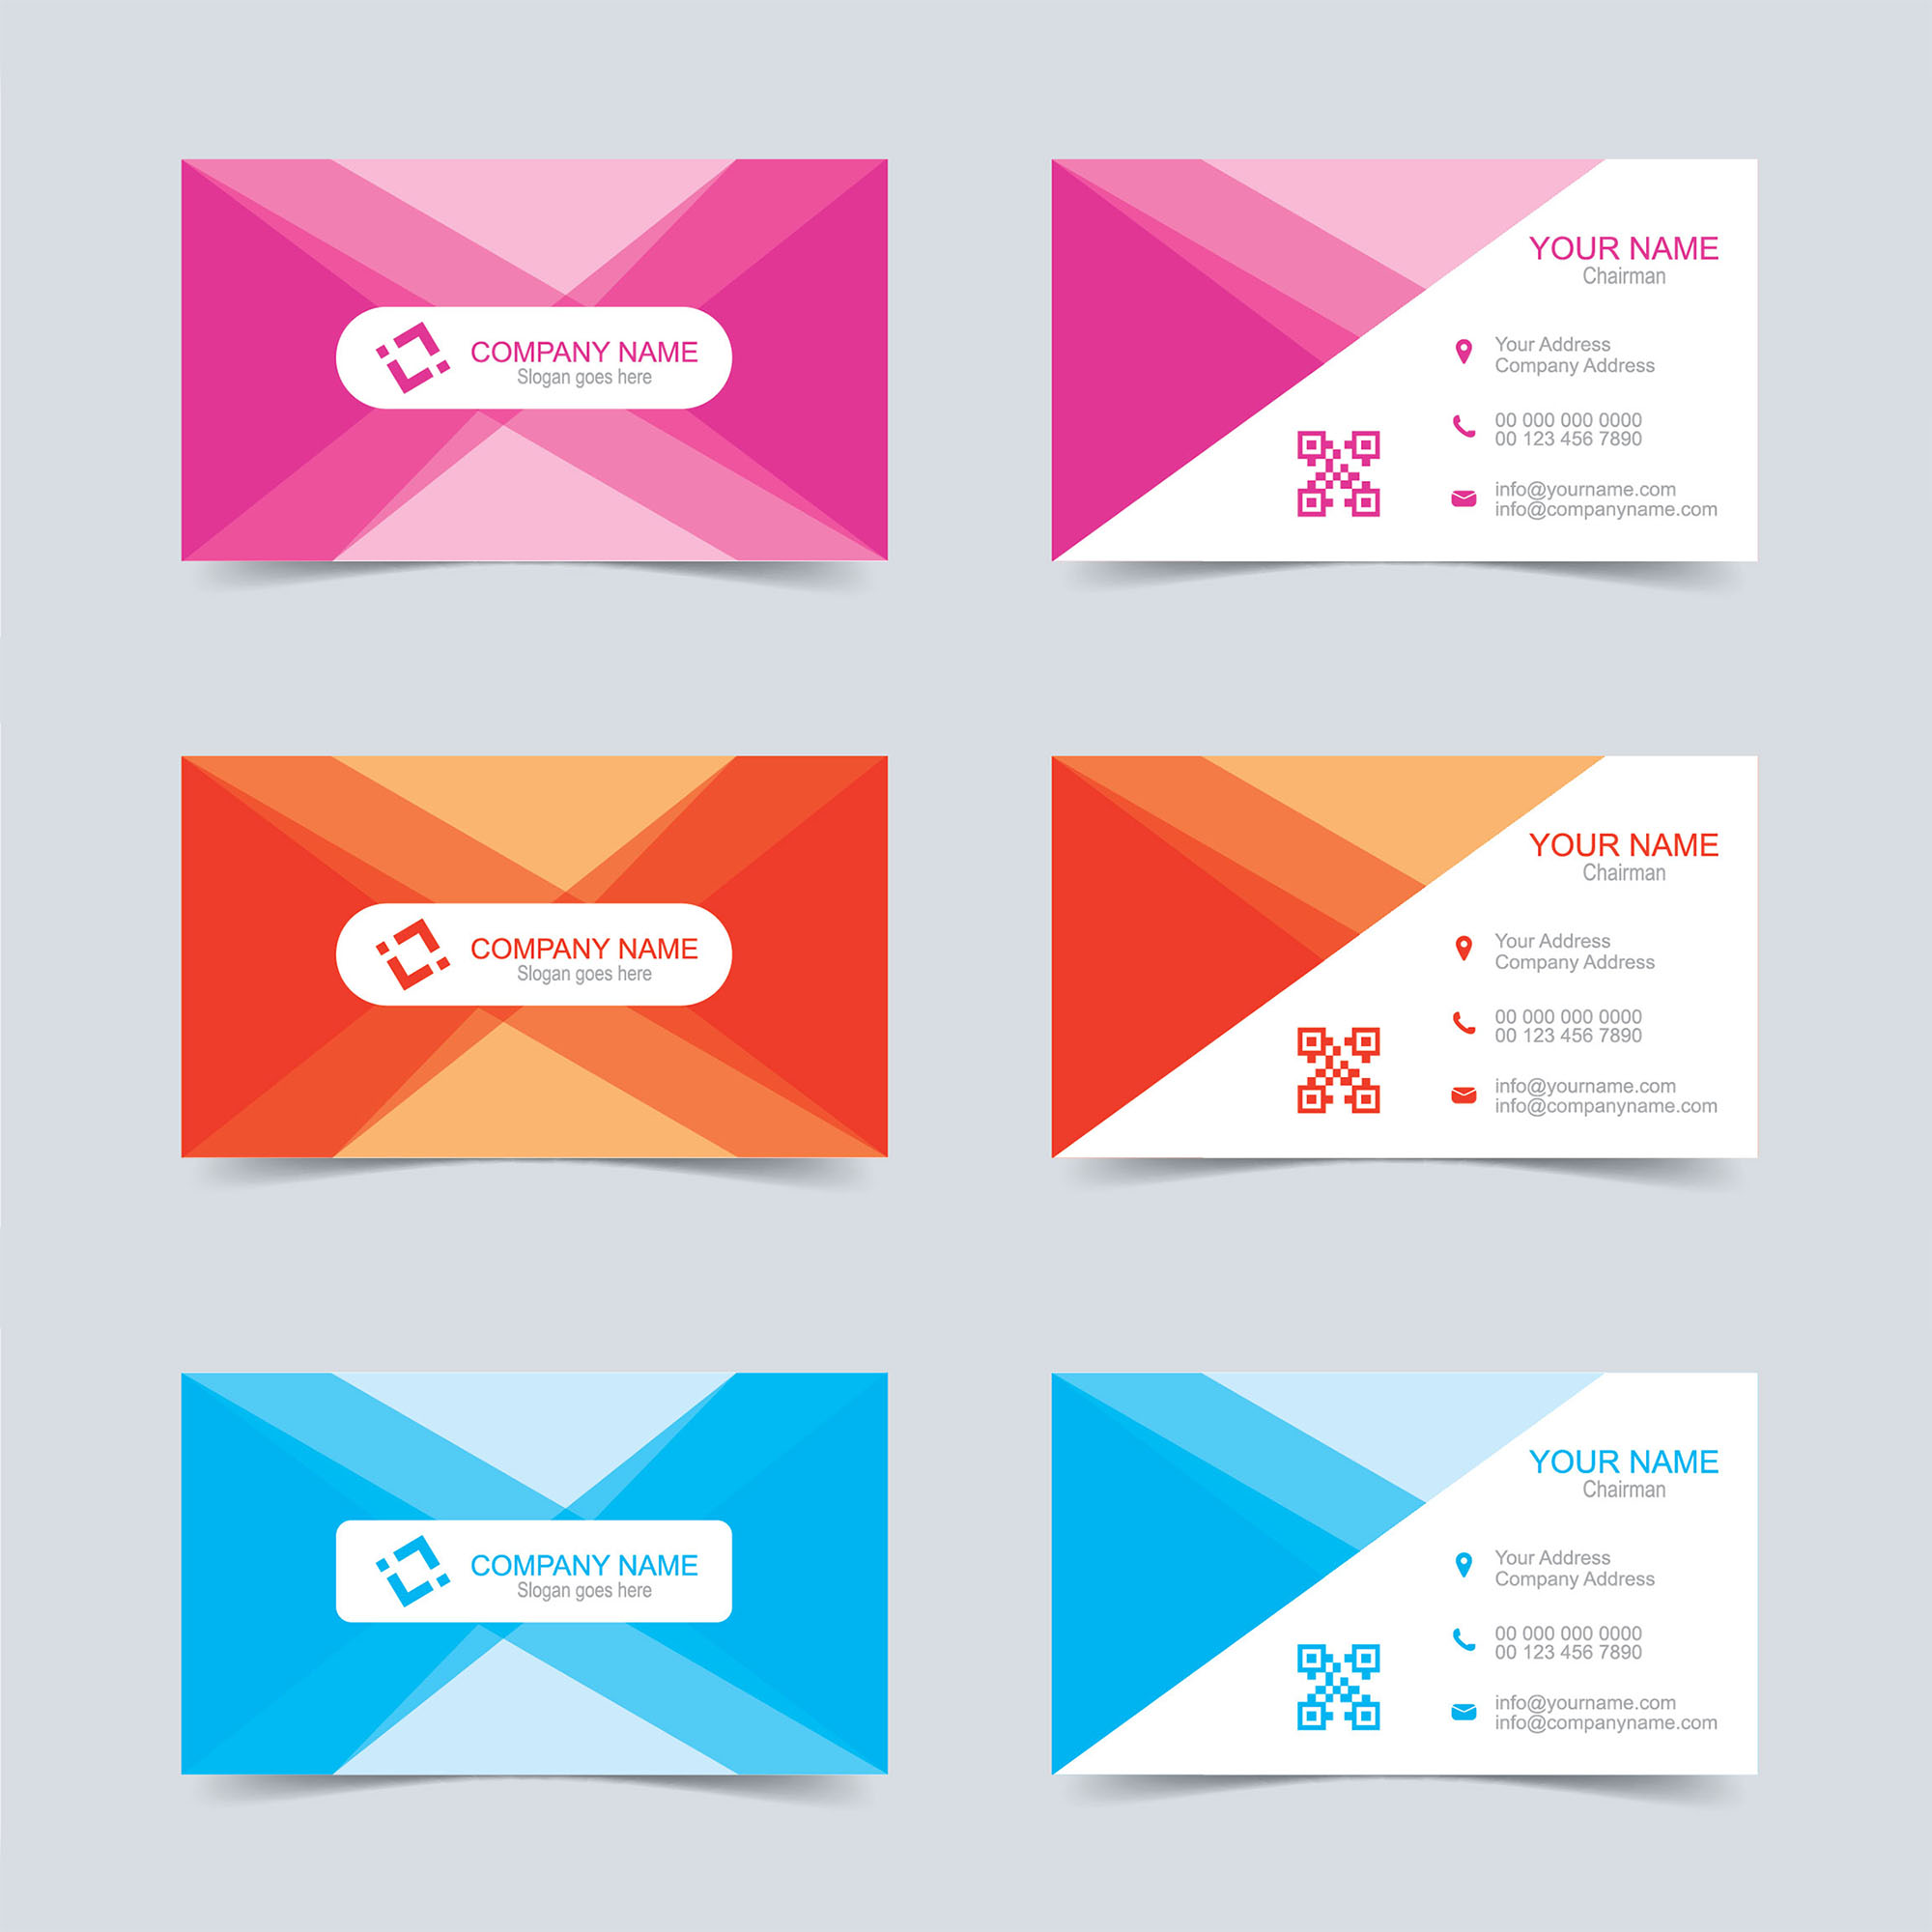 Vector business card template free download wisxi business card business cards business card design business card template design templates accmission Choice Image